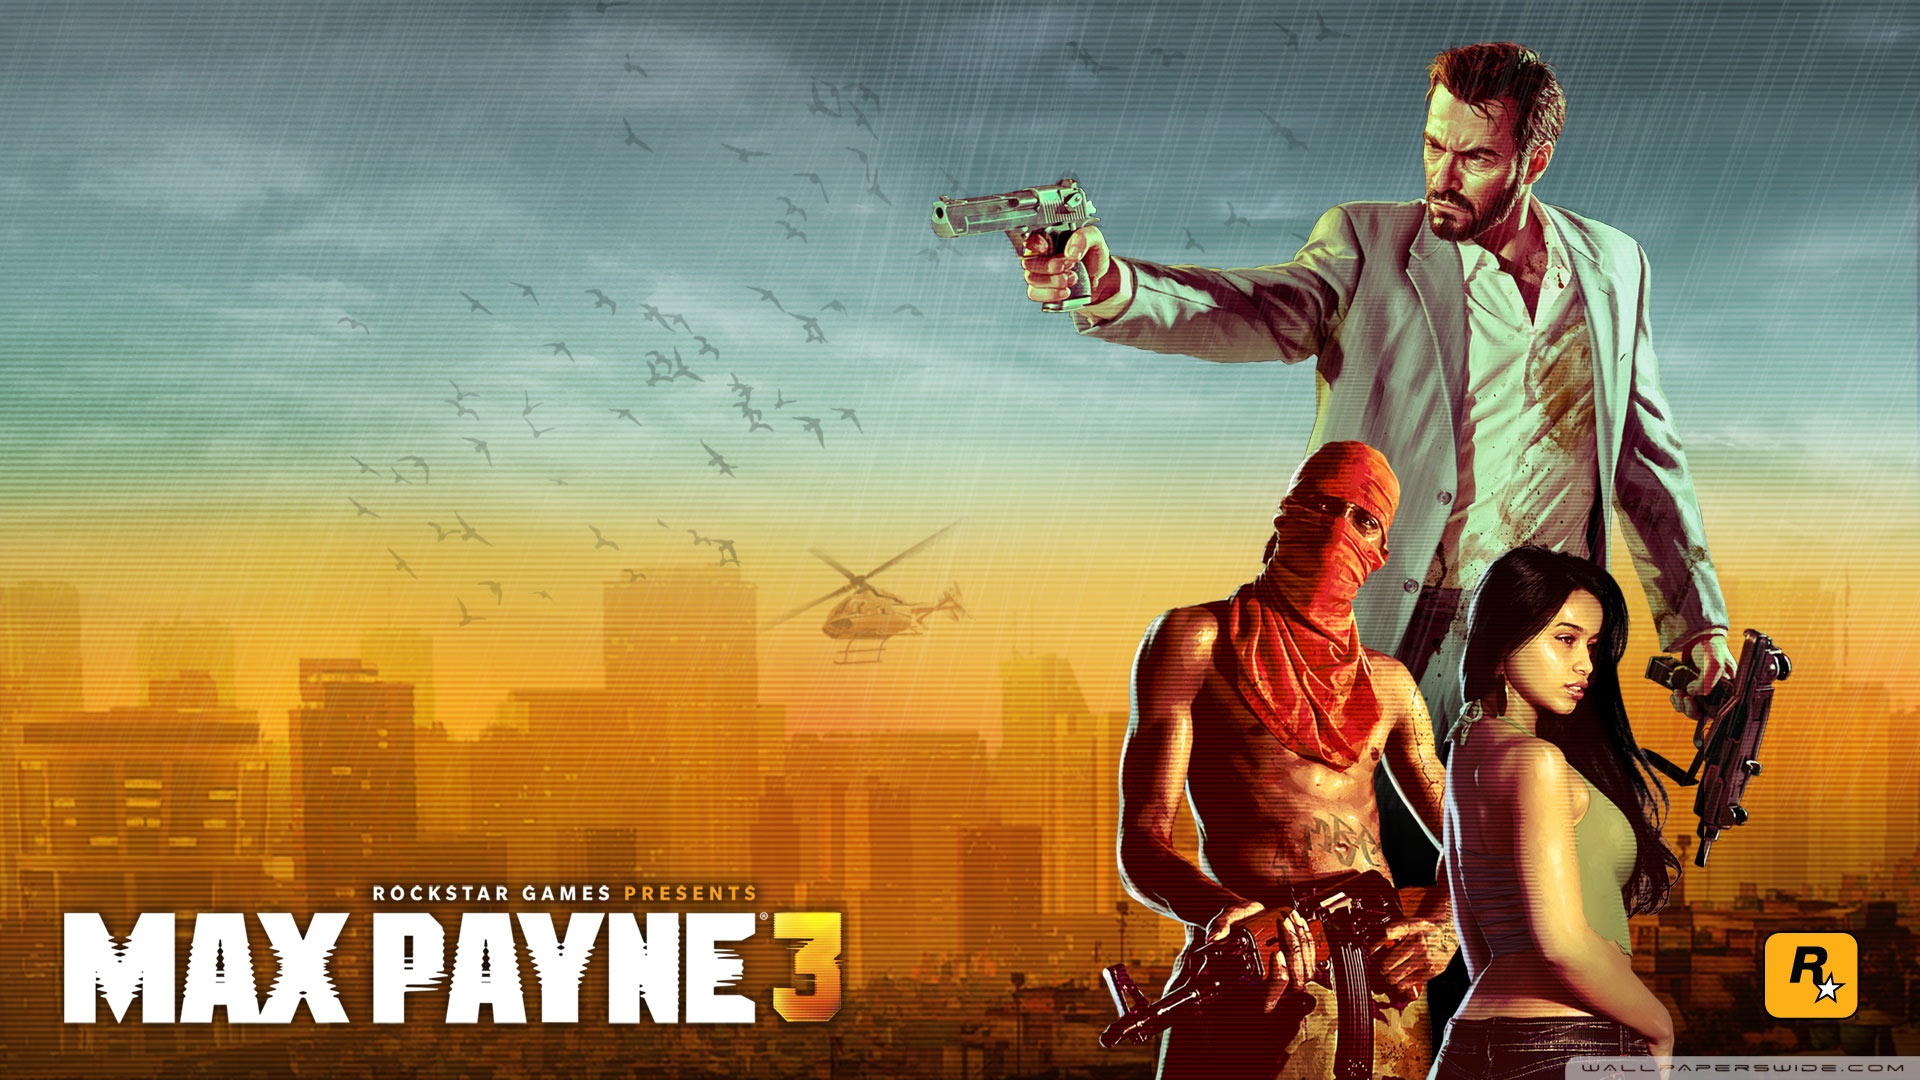 Max Payne 3 Wallpaper